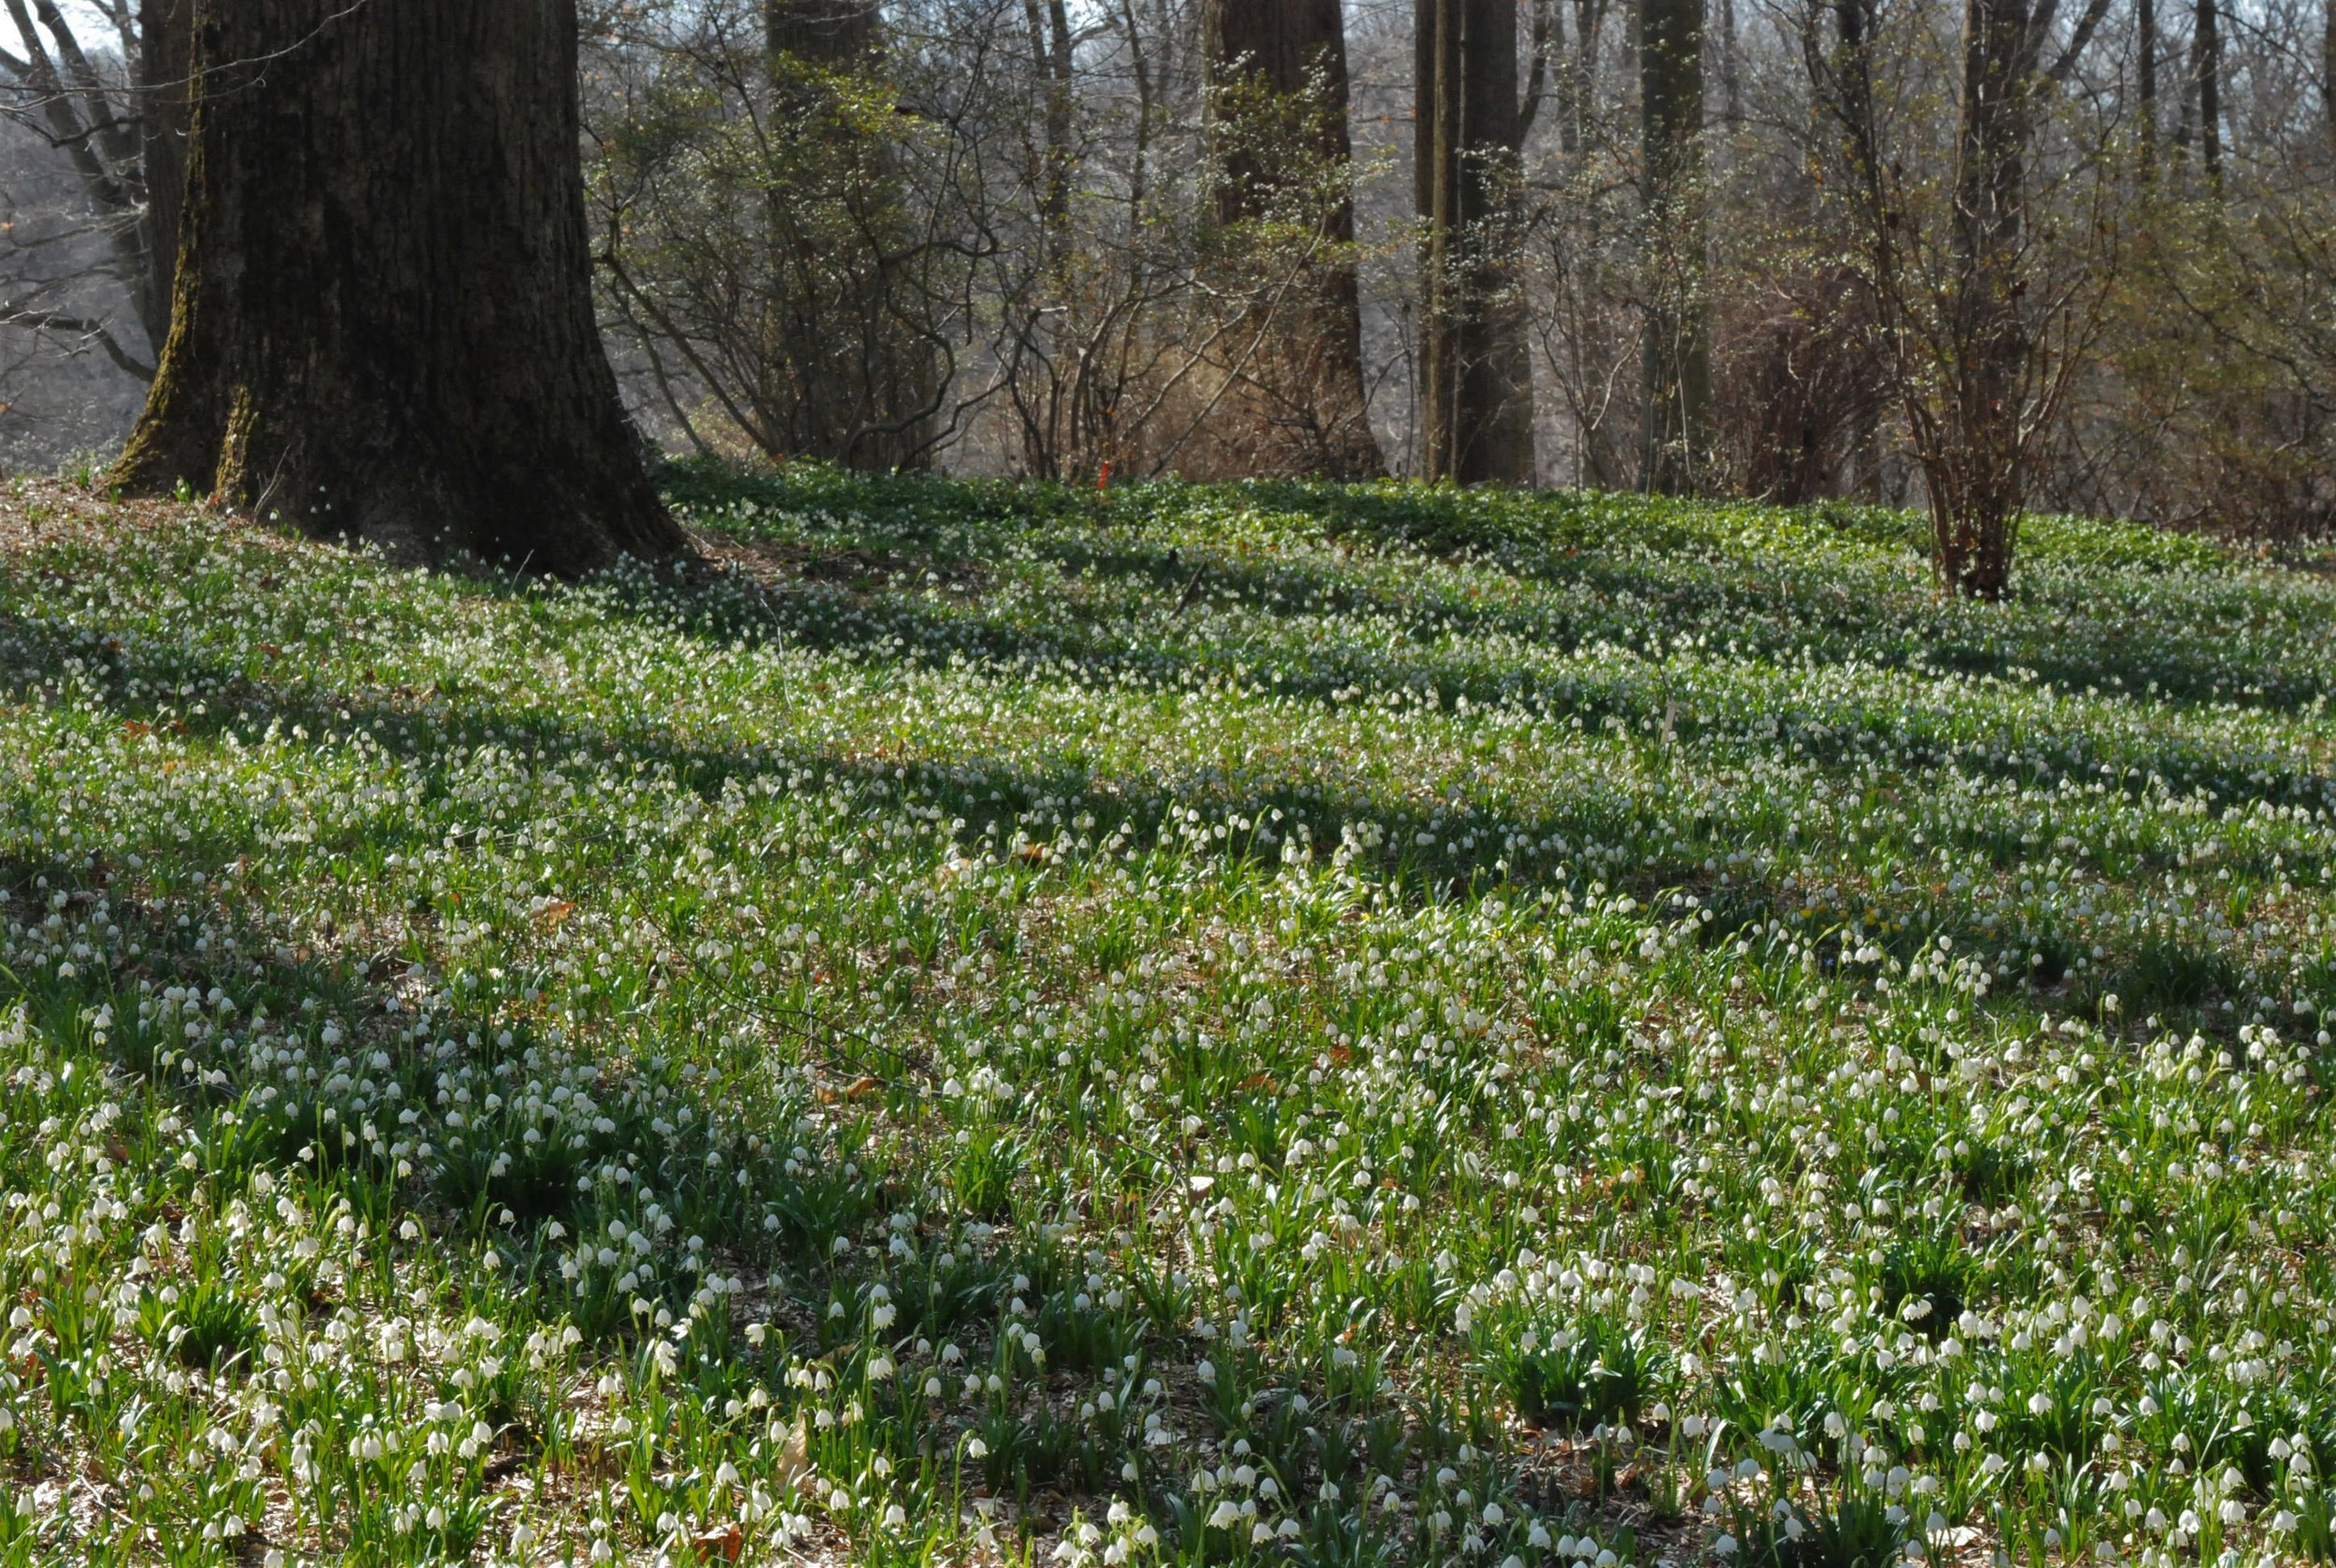 The entire woodland floor at the March Bank, Winterthur, DE, is carpeted with  Leucojum vernum  during early spring. Imagine thousands of flowers tinkering in the breezes and just scenting the warm air.